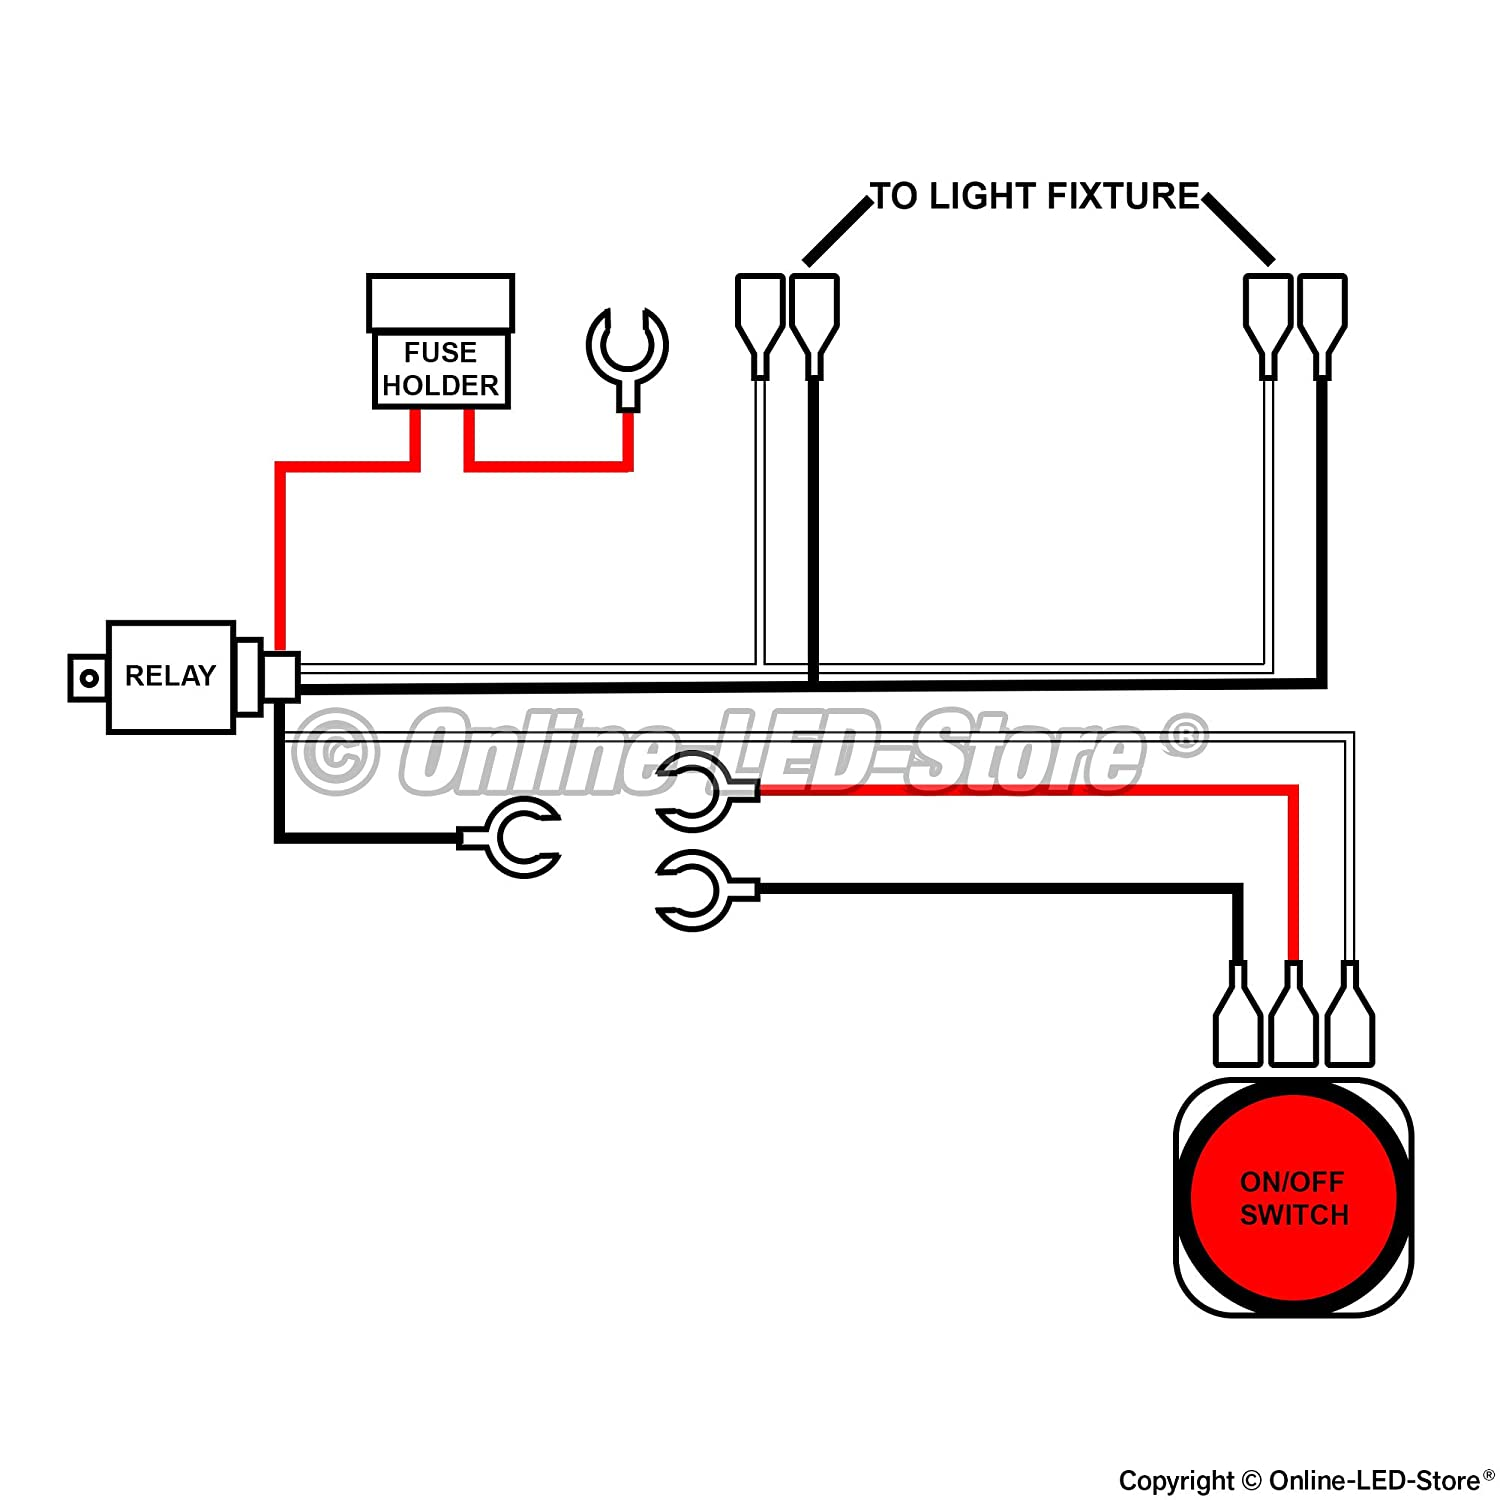 716CShdU1oL._SL1500_ nilight wiring diagram 12v rocker switch wiring diagram \u2022 free nilight led wiring diagram at soozxer.org